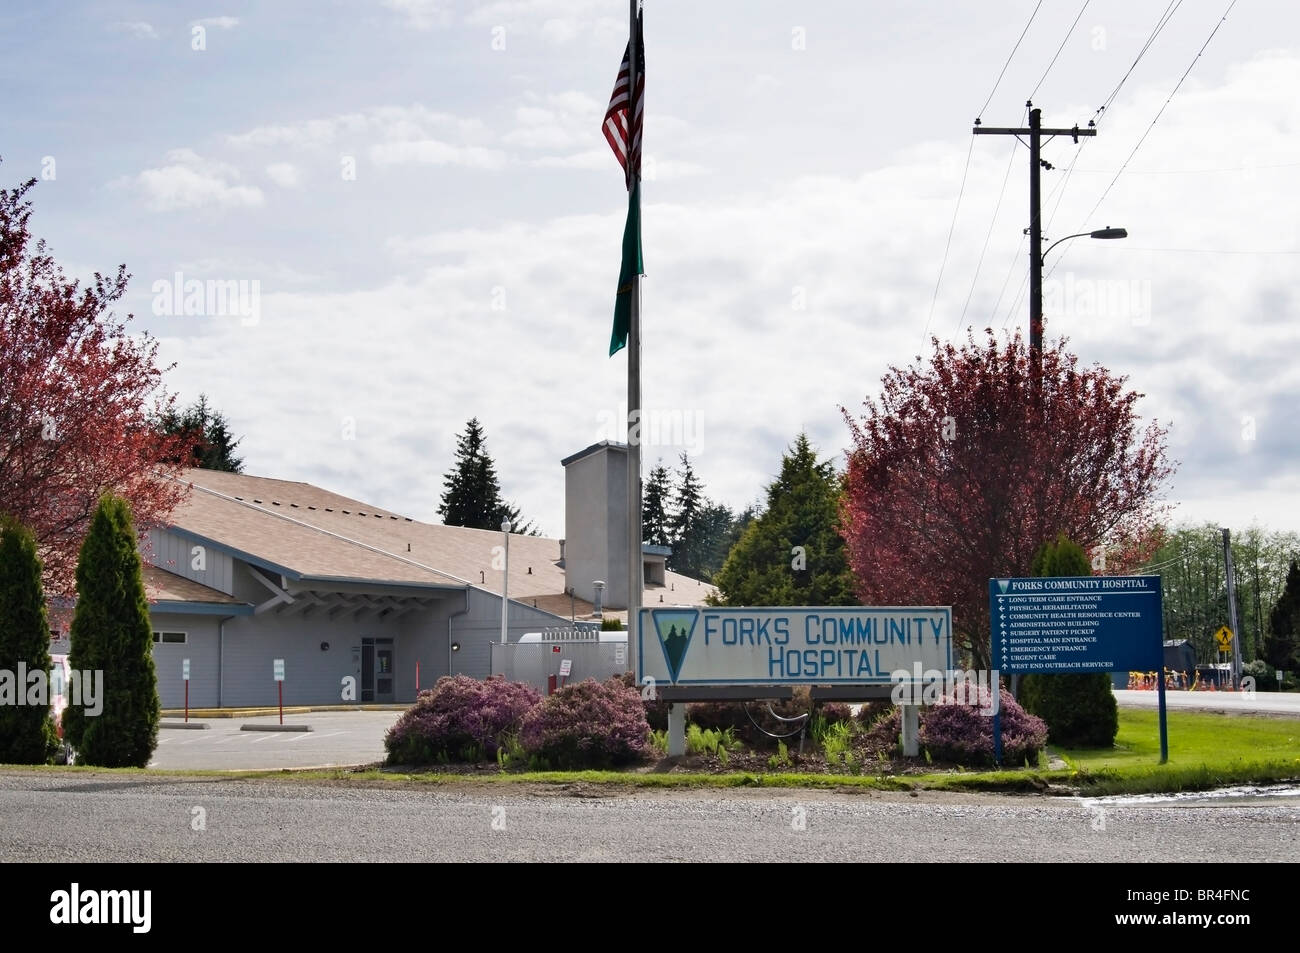 Front view of Forks Community Hospital in Forks, Washington. - Stock Image